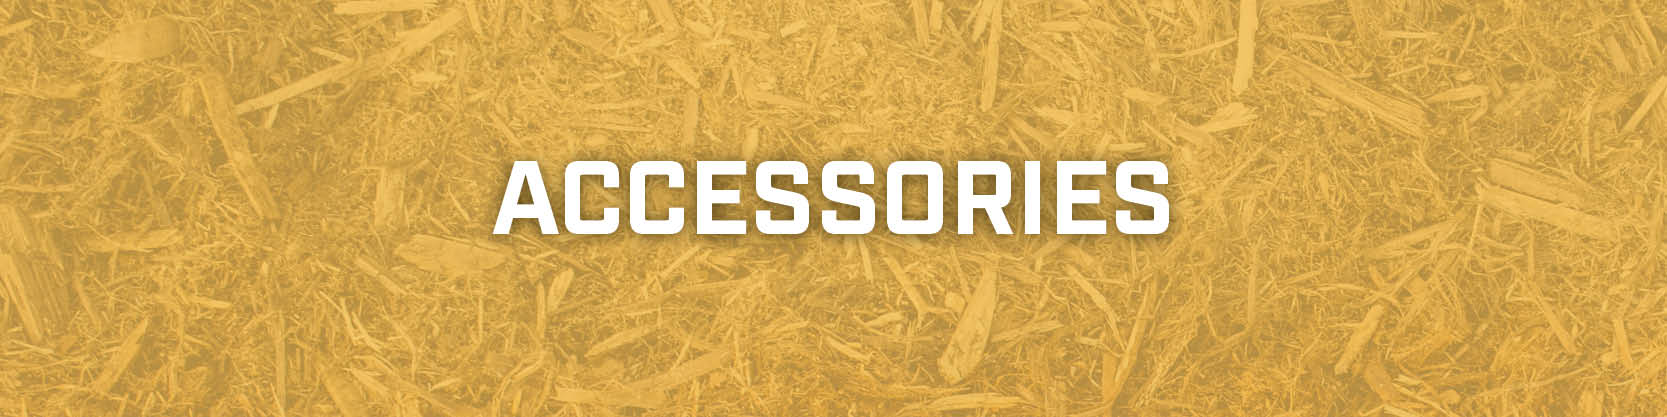 ProductCategories-Accessories